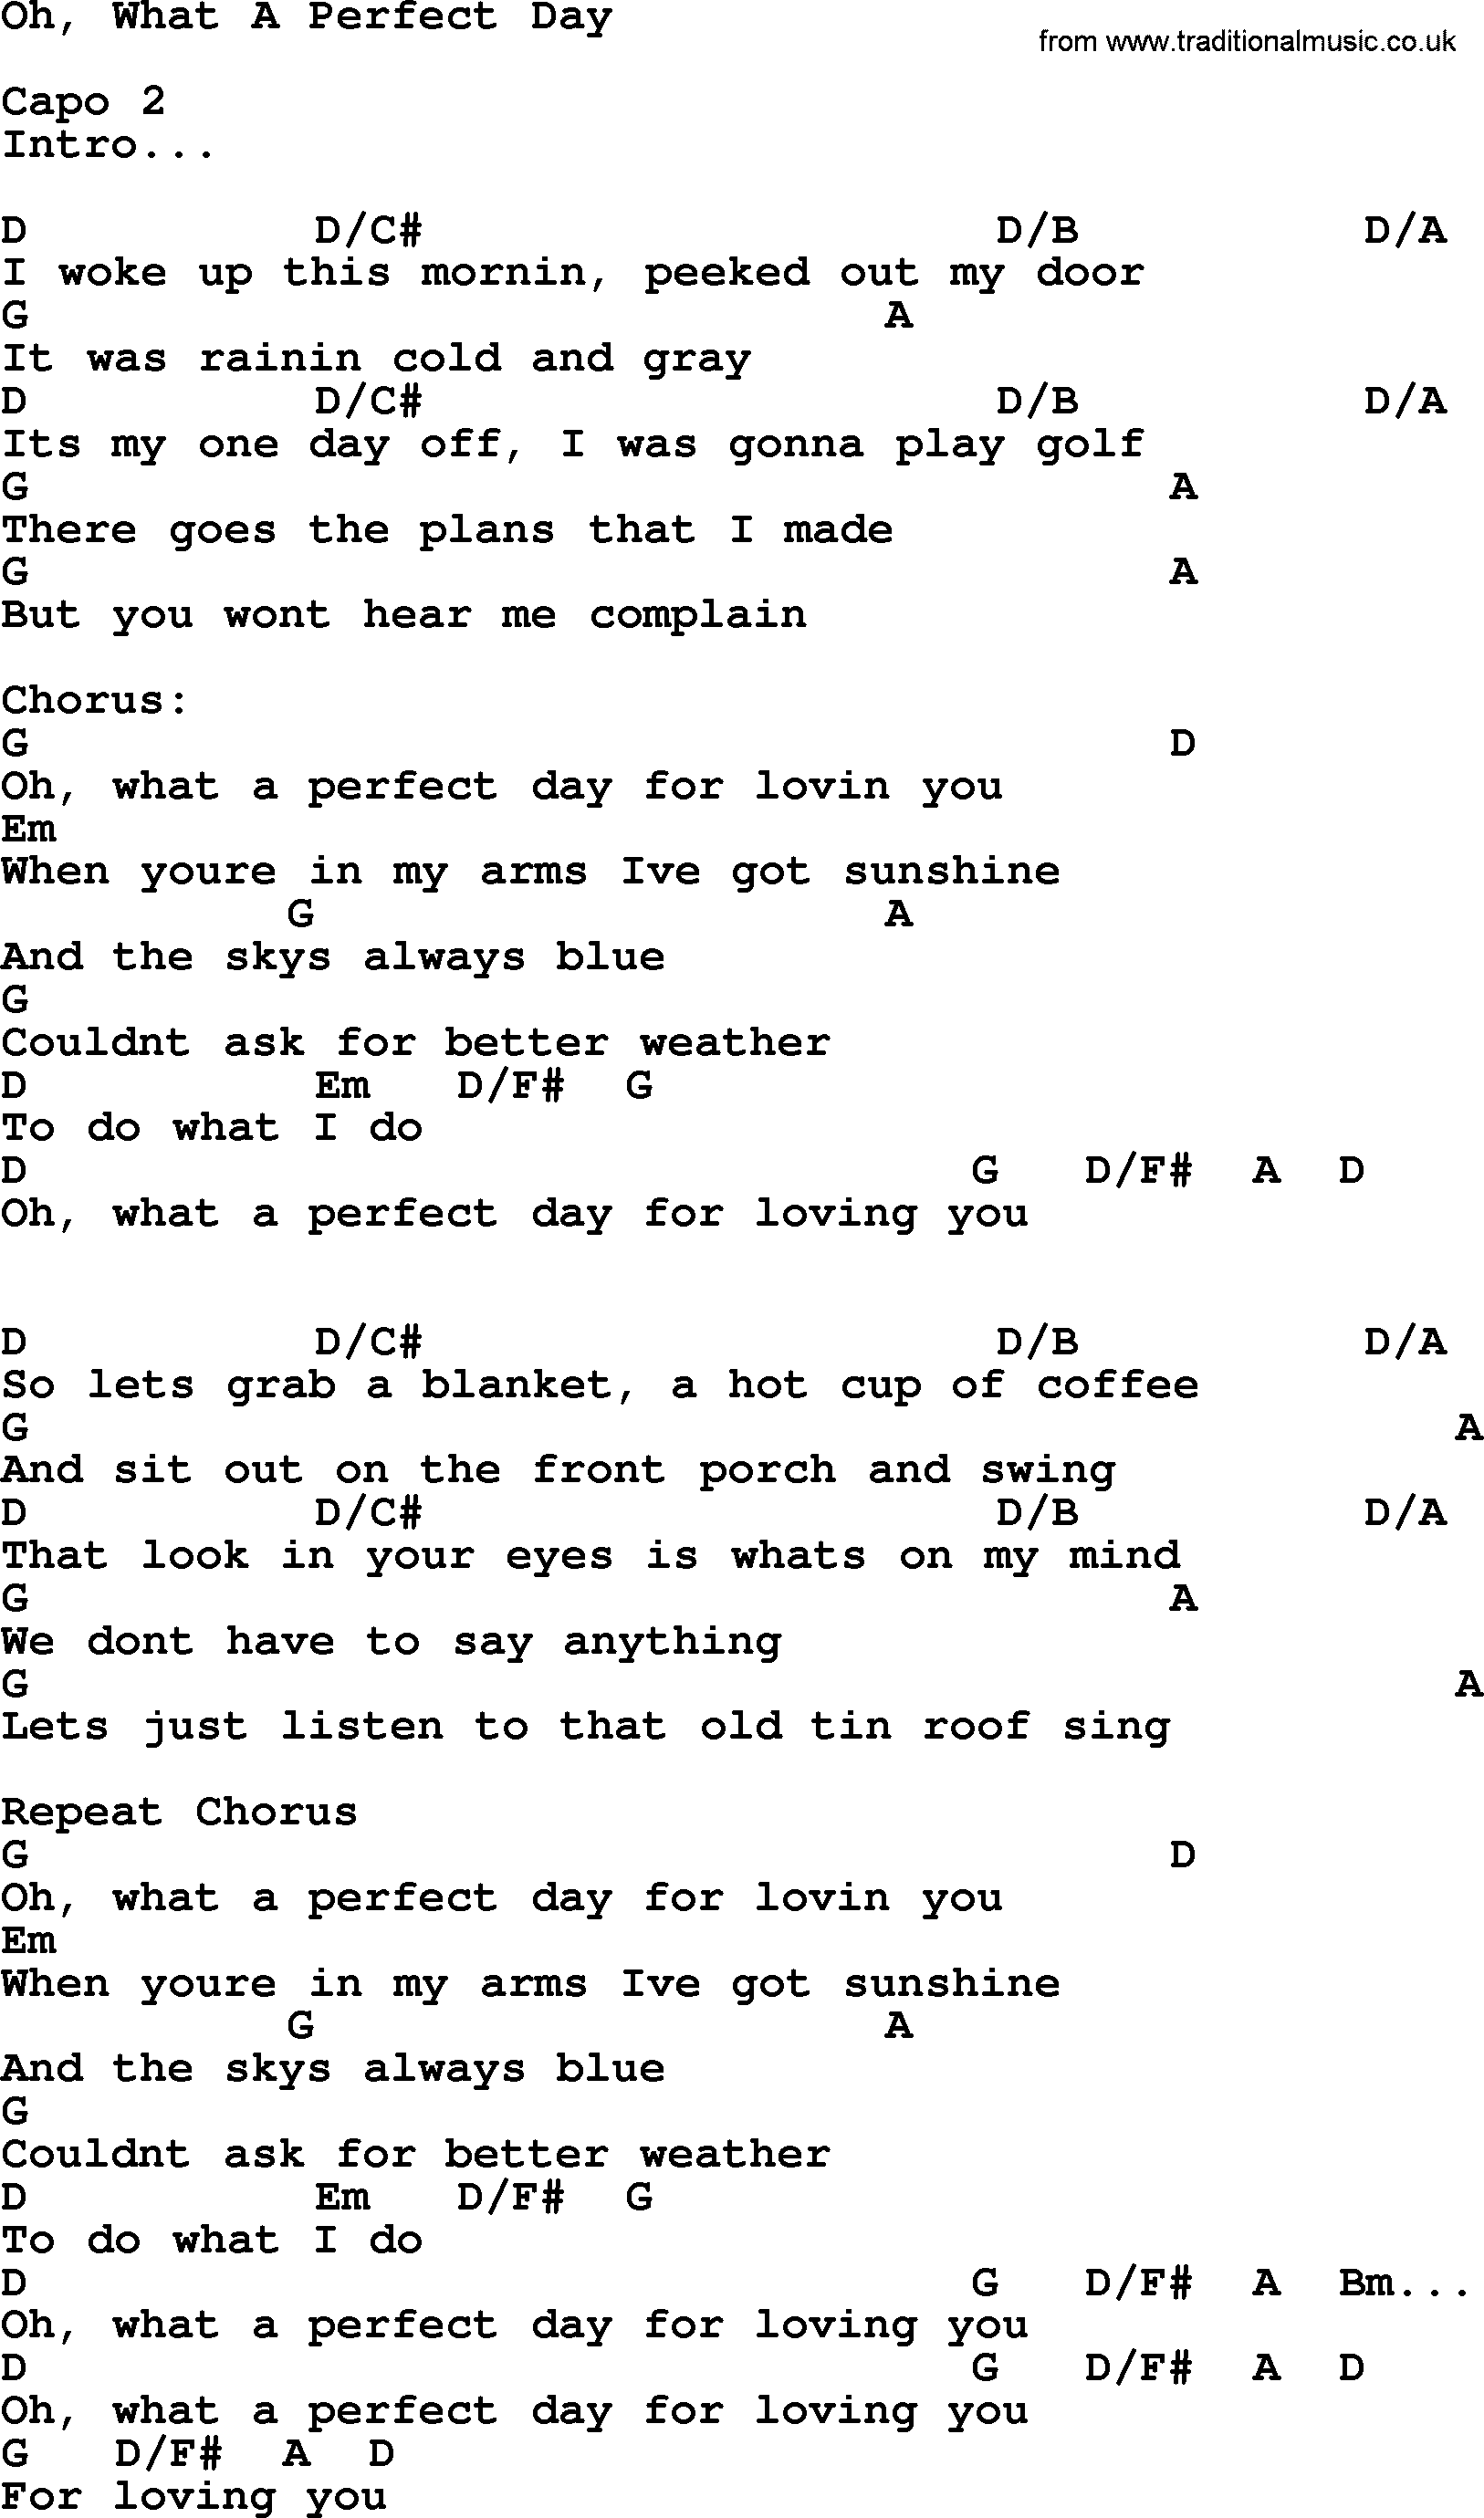 Oh, What A Perfect Day, by George Strait - lyrics and chords